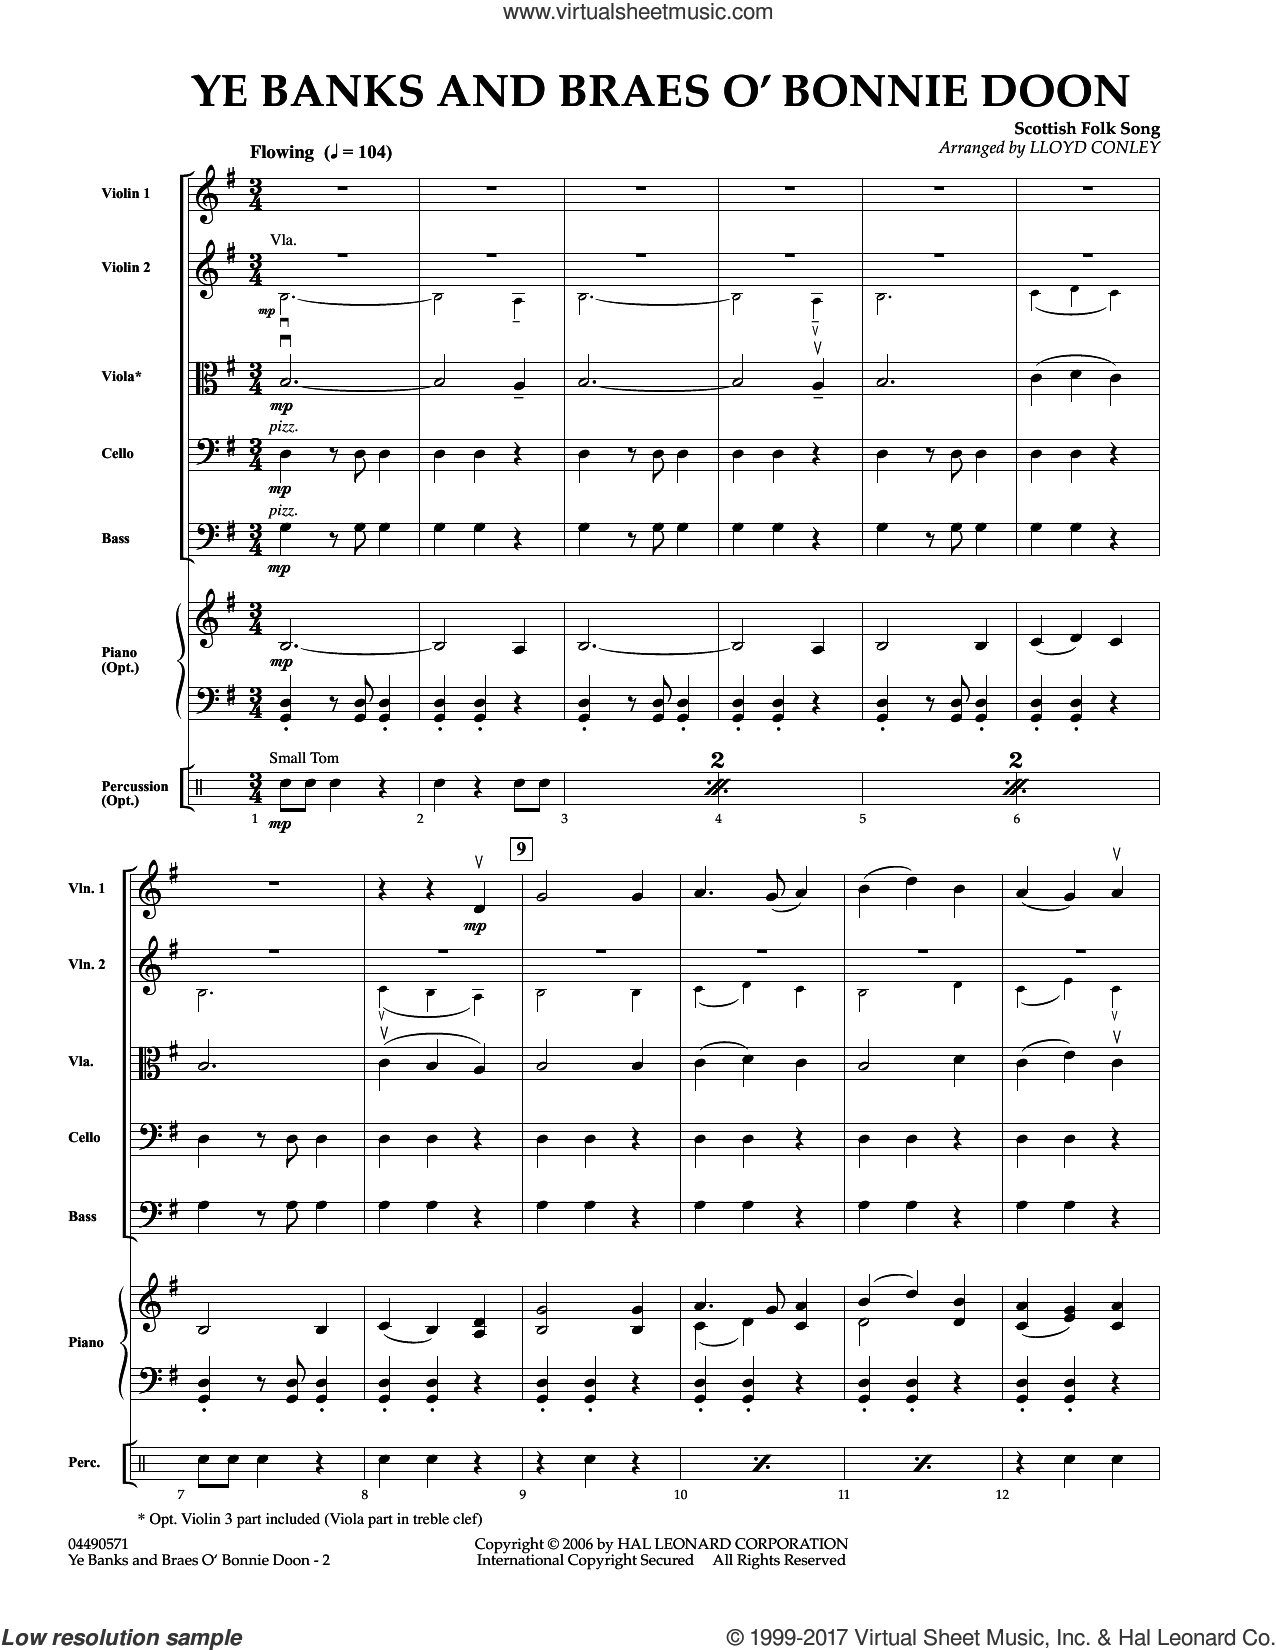 Ye Banks and Braes O' Bonnie Doon (COMPLETE) sheet music for orchestra by Robert Burns and Lloyd Conley, intermediate. Score Image Preview.